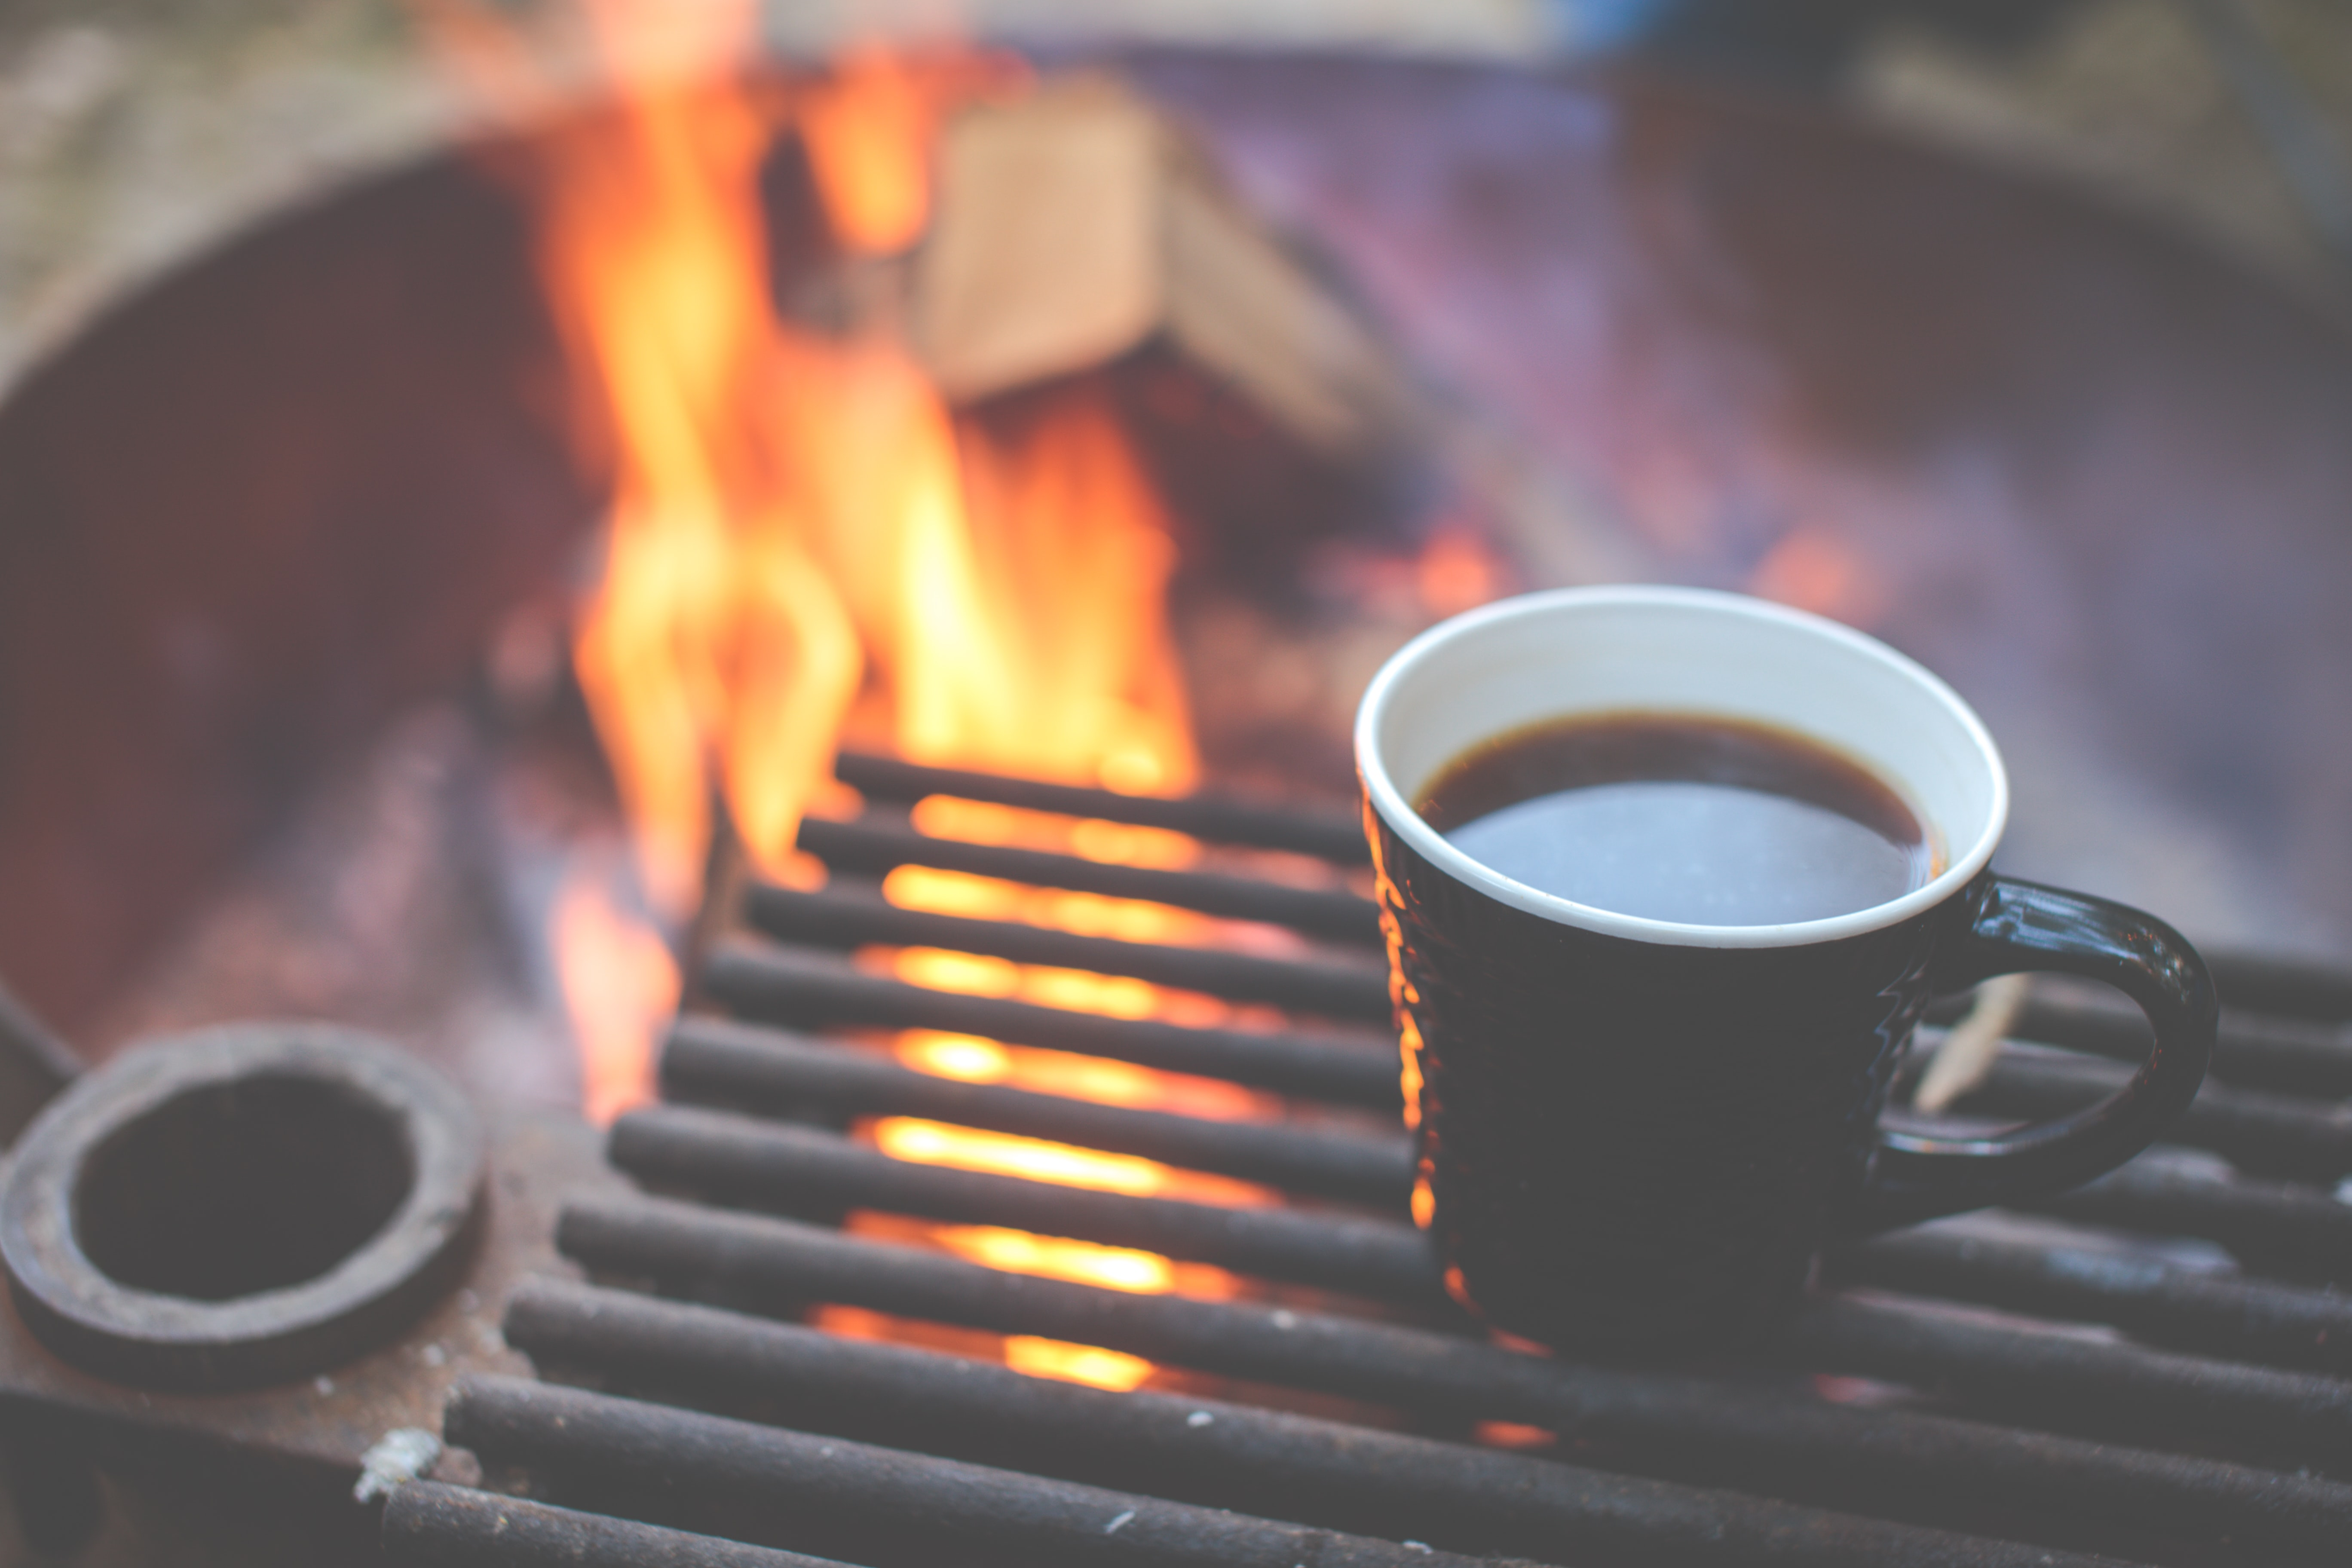 A cup of coffee on a grill by the campfire in Shakamak State Park.